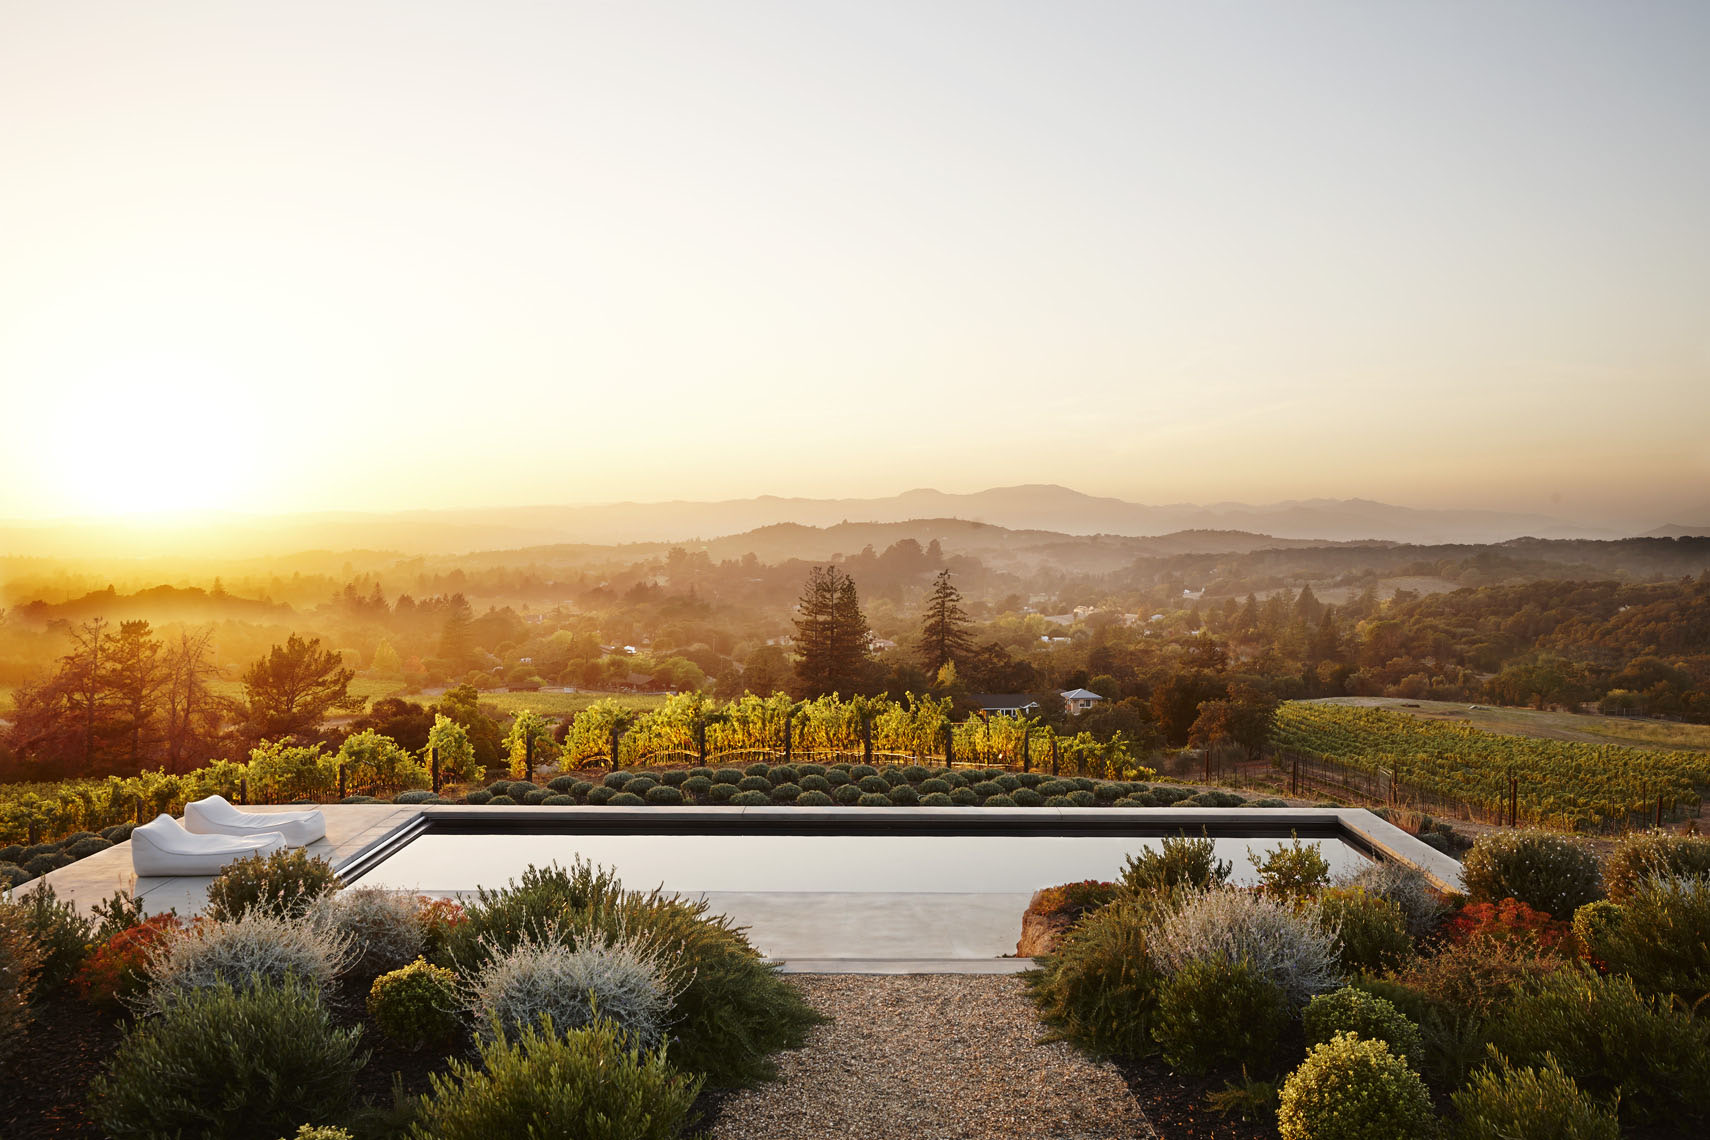 Exterior view of backyard garden and pool with chaise lounger in Napa Valley at sunset vineyard in background Sean Dagen Photography